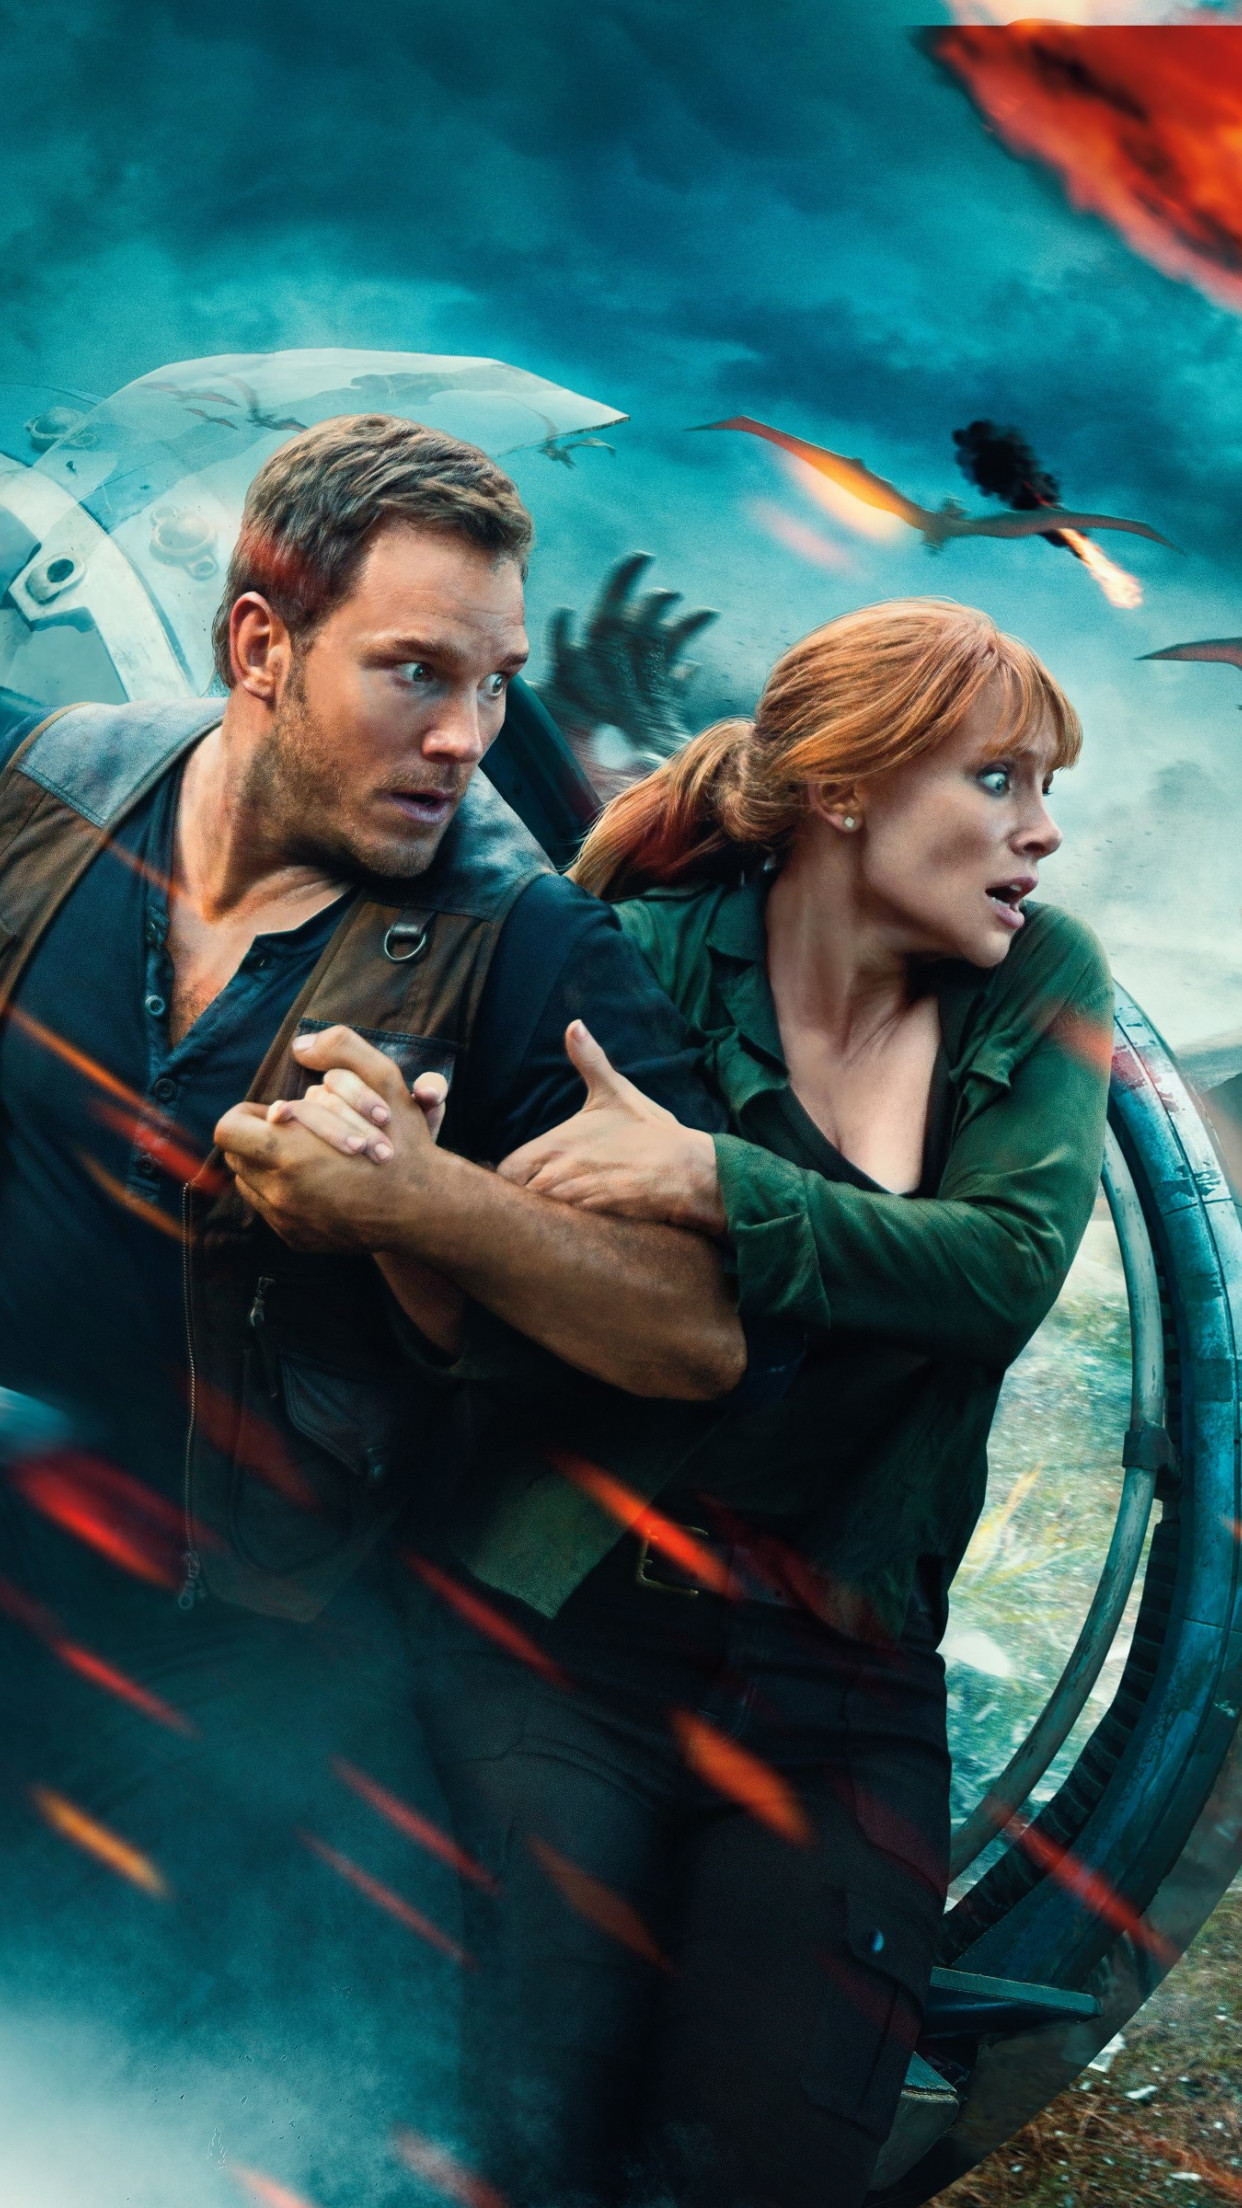 Download Wallpaper Jurassic World Fallen Kingdom 2018 1242x2208